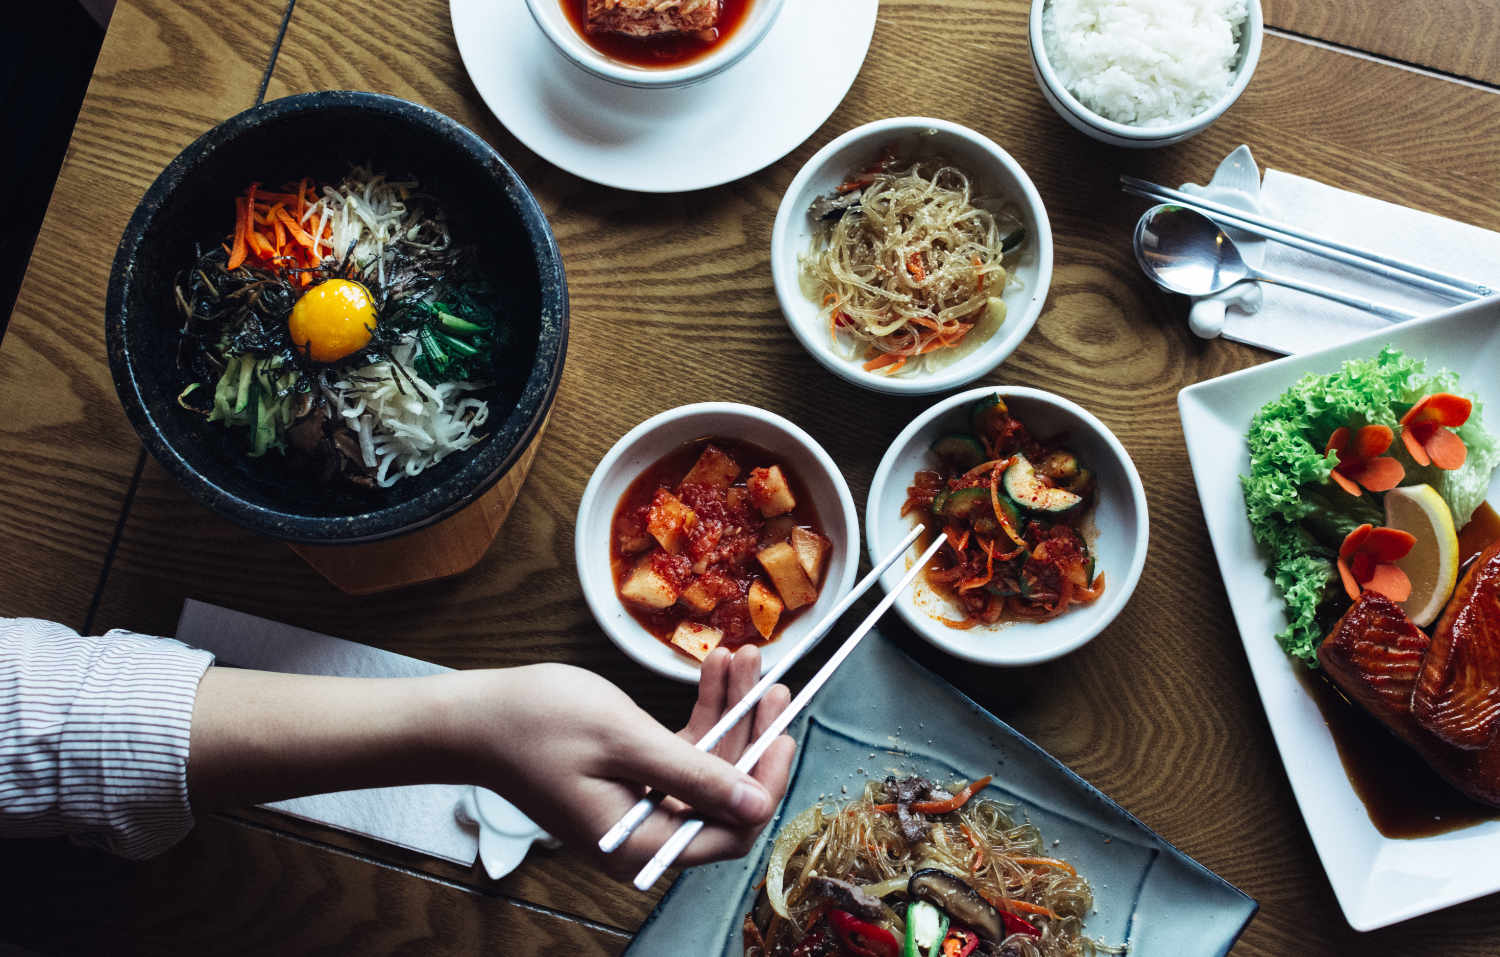 bibimbap-kimchi-and-other-traditional-korean-food-xxl.jpg